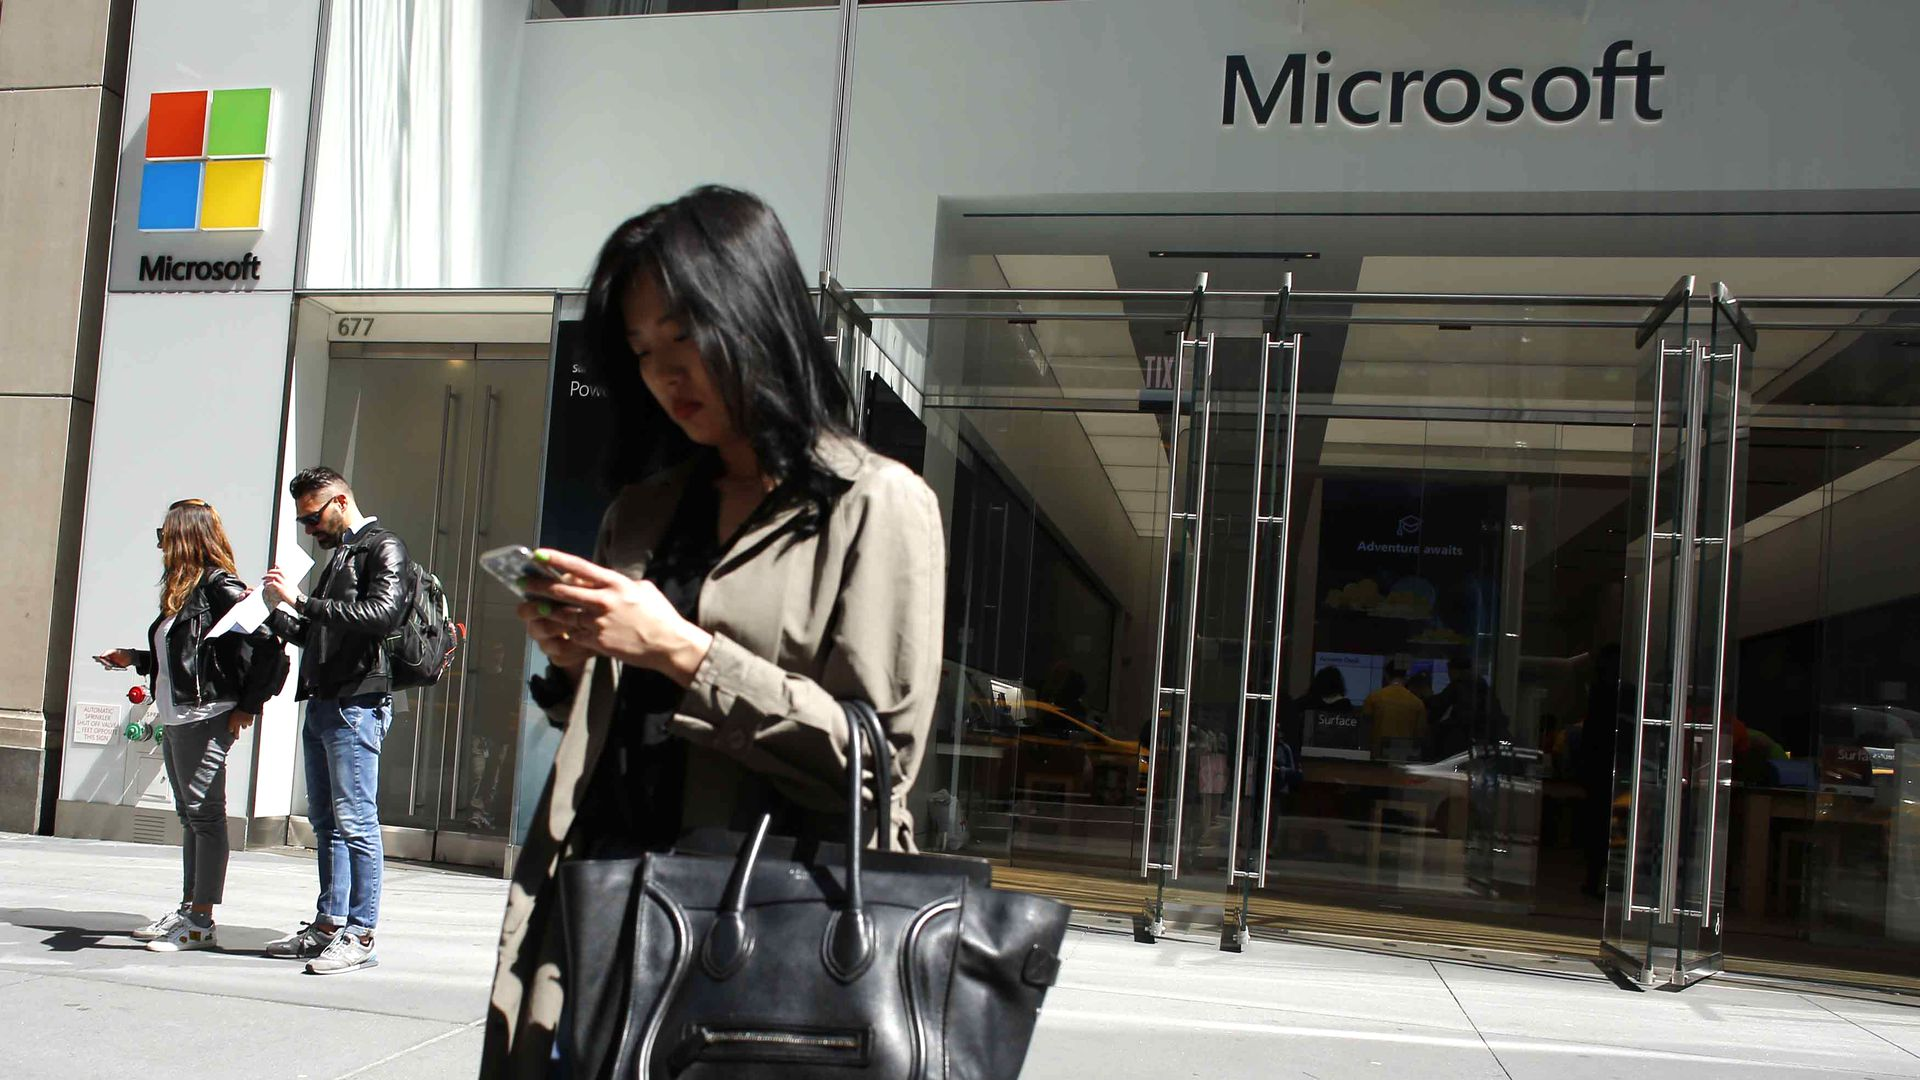 A photo of a woman on her phone outside a Microsoft office